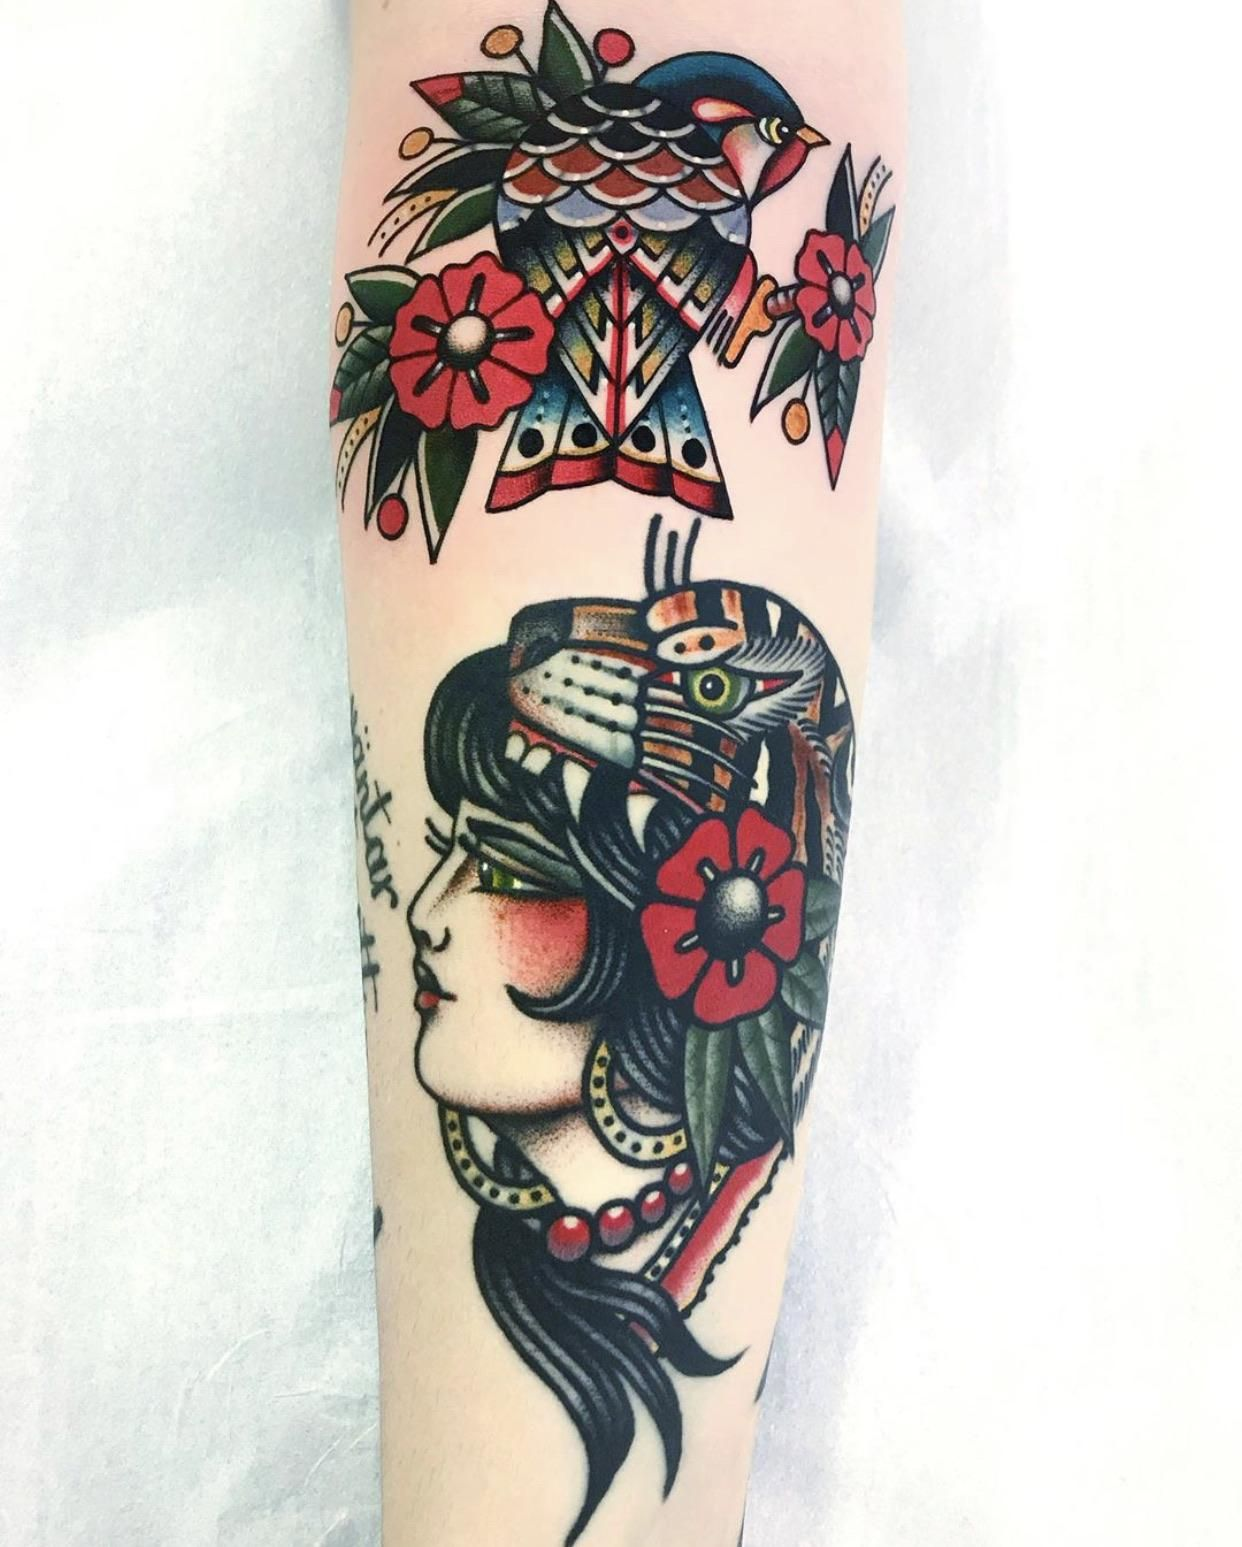 The Bird Is My Second Tattoo By Dani Queipo Done At Sang Blue Tattoo Dalston London Uk Blue Tattoo Tattoos Flower Tattoo